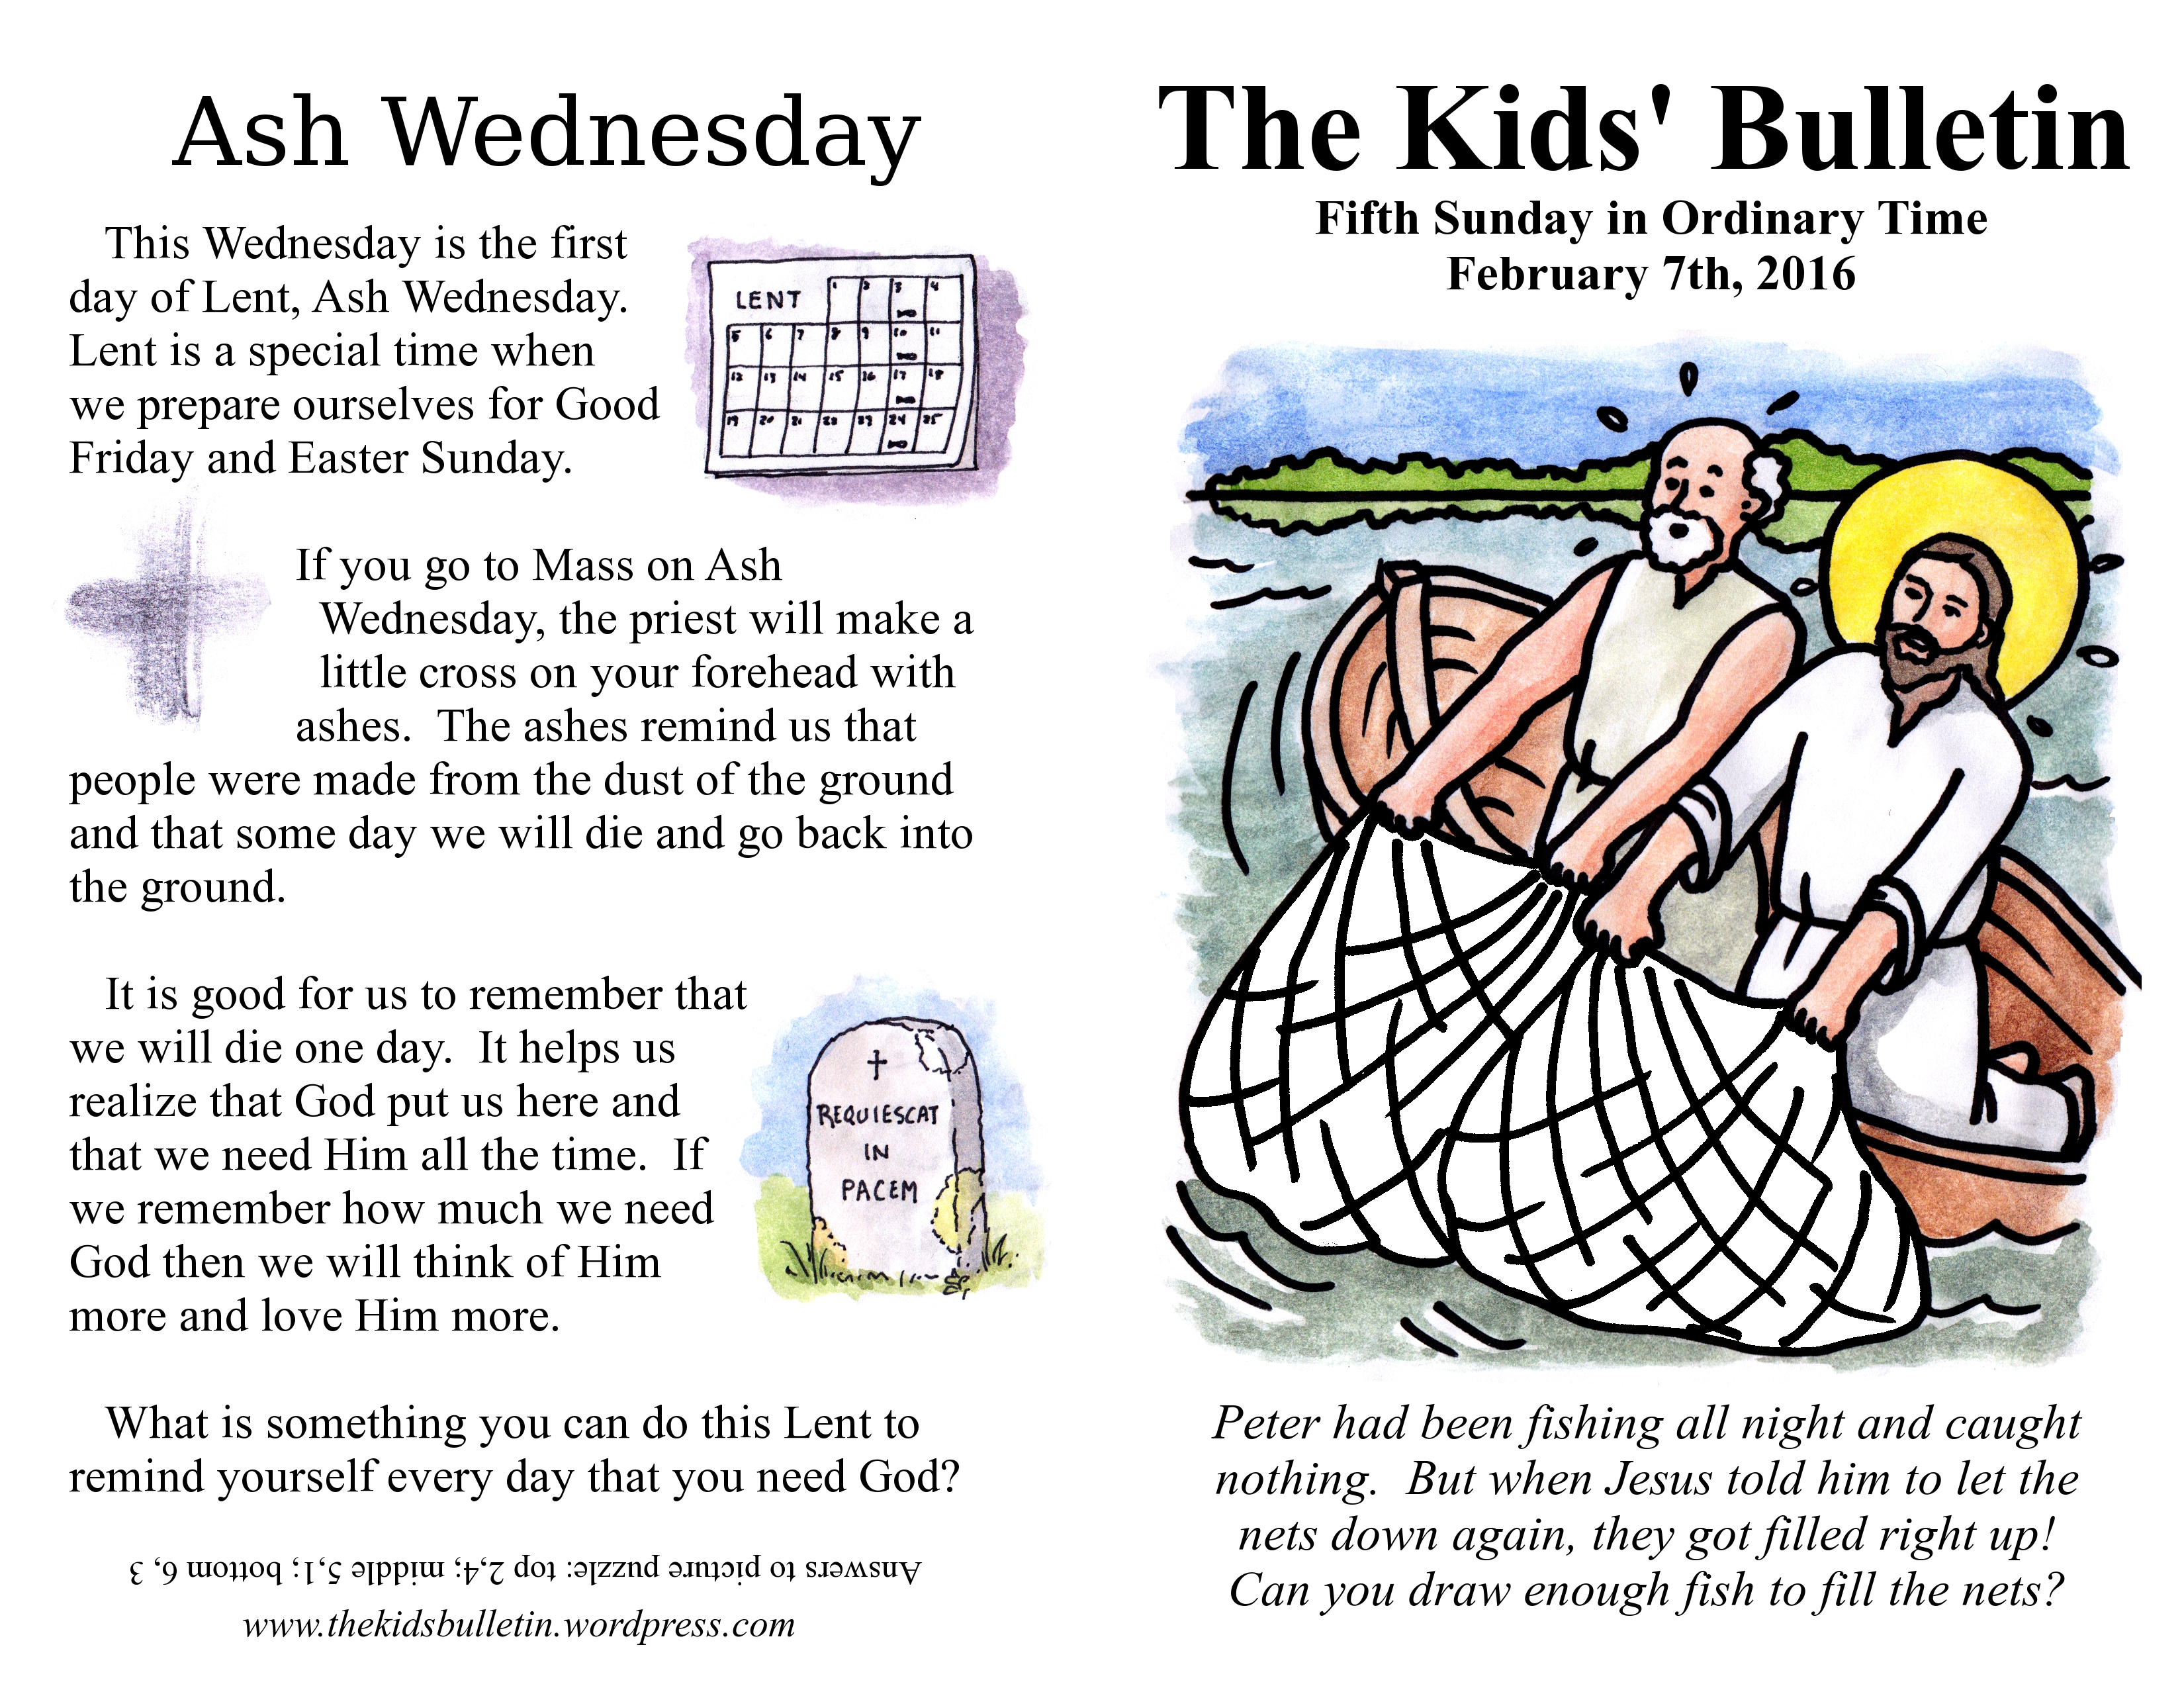 The Kids Bulletin For Sunday February 7th